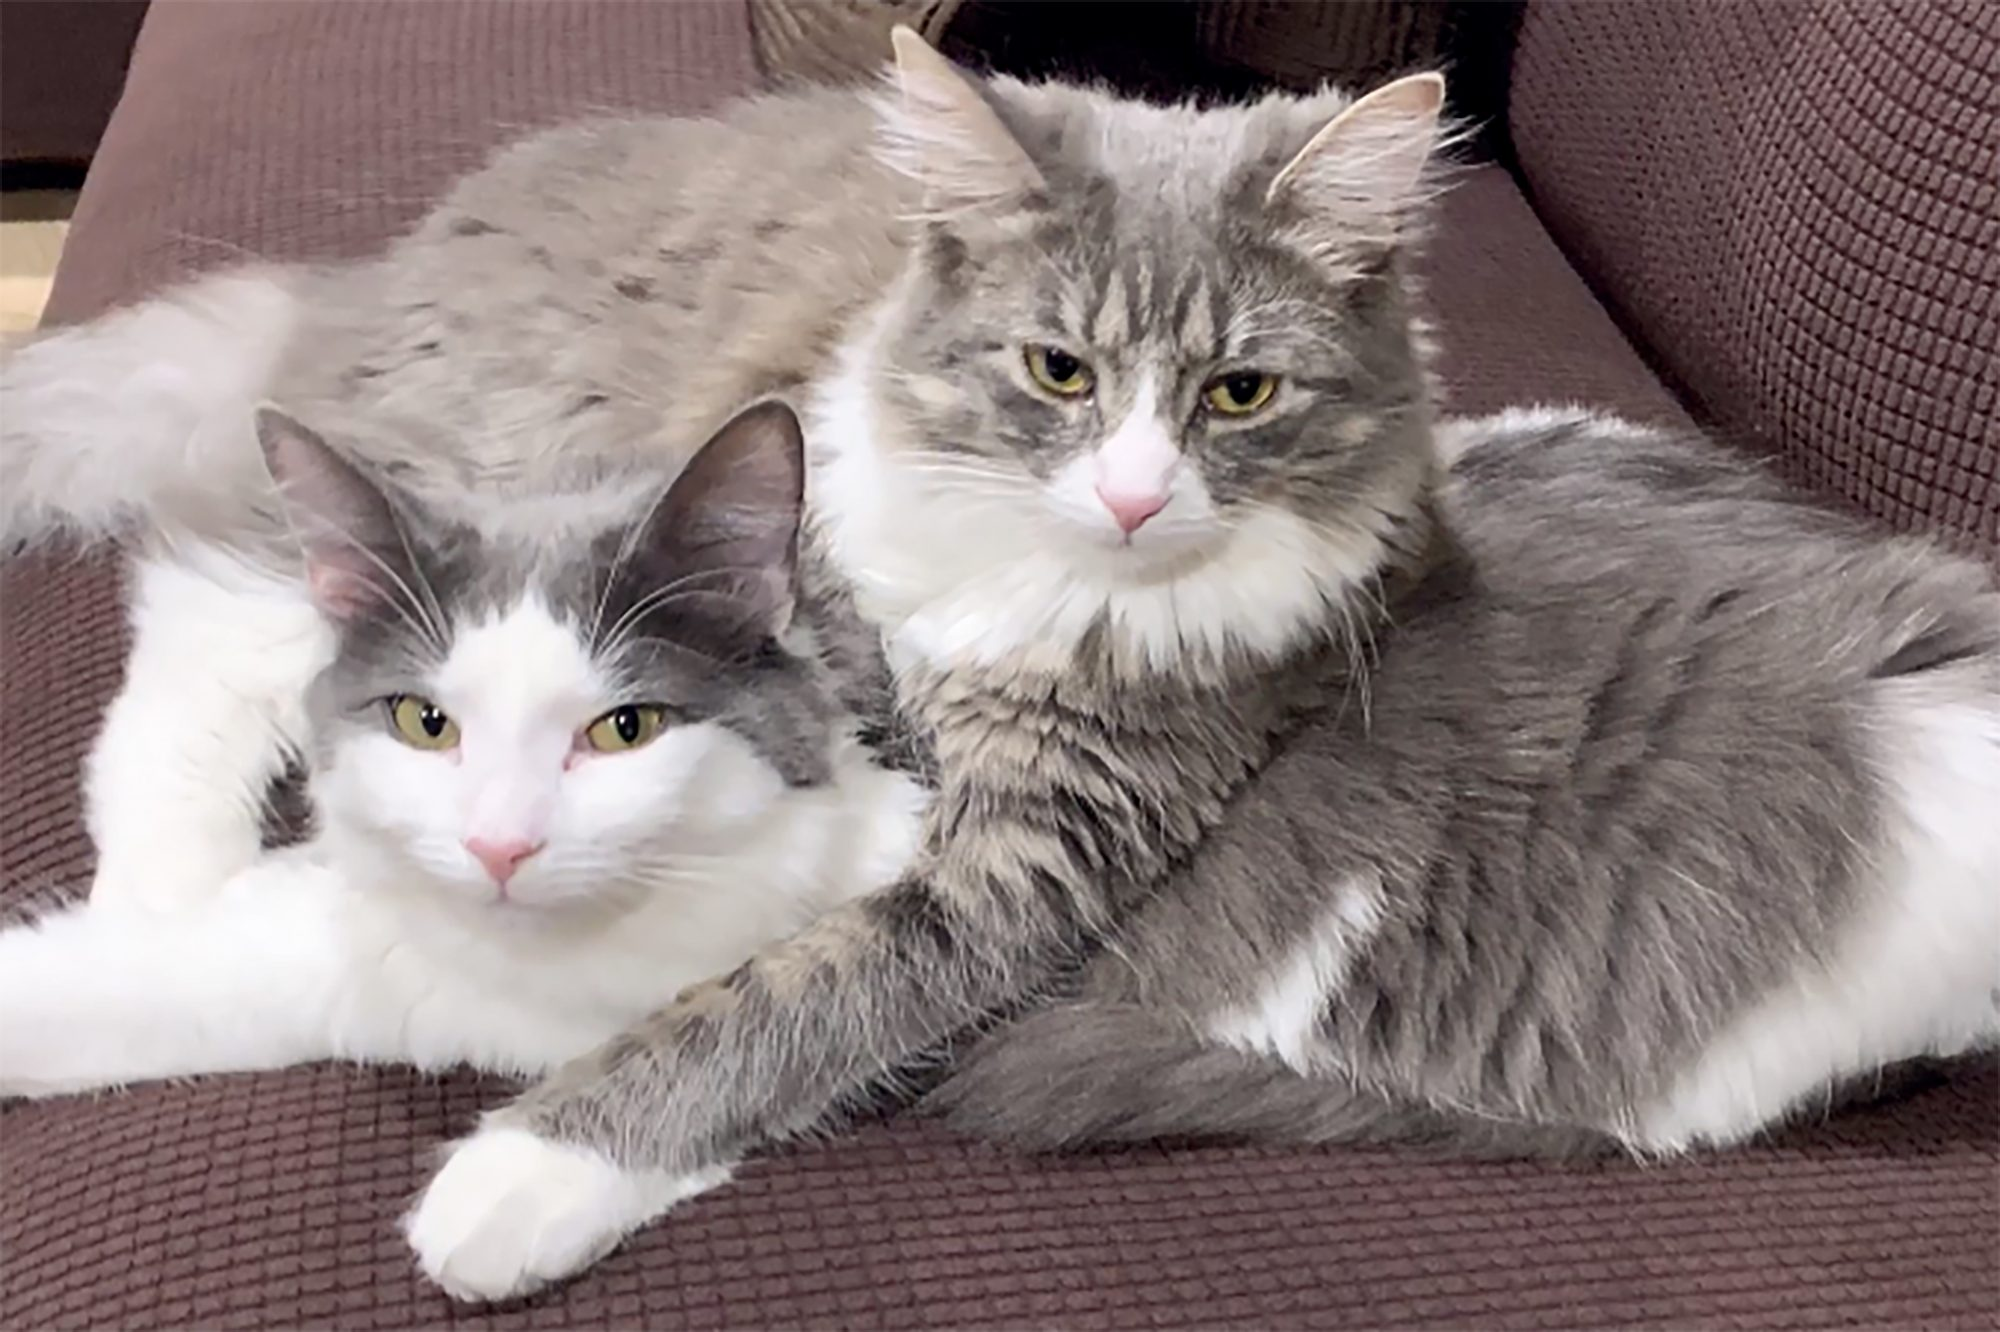 two gray and white cats lying together